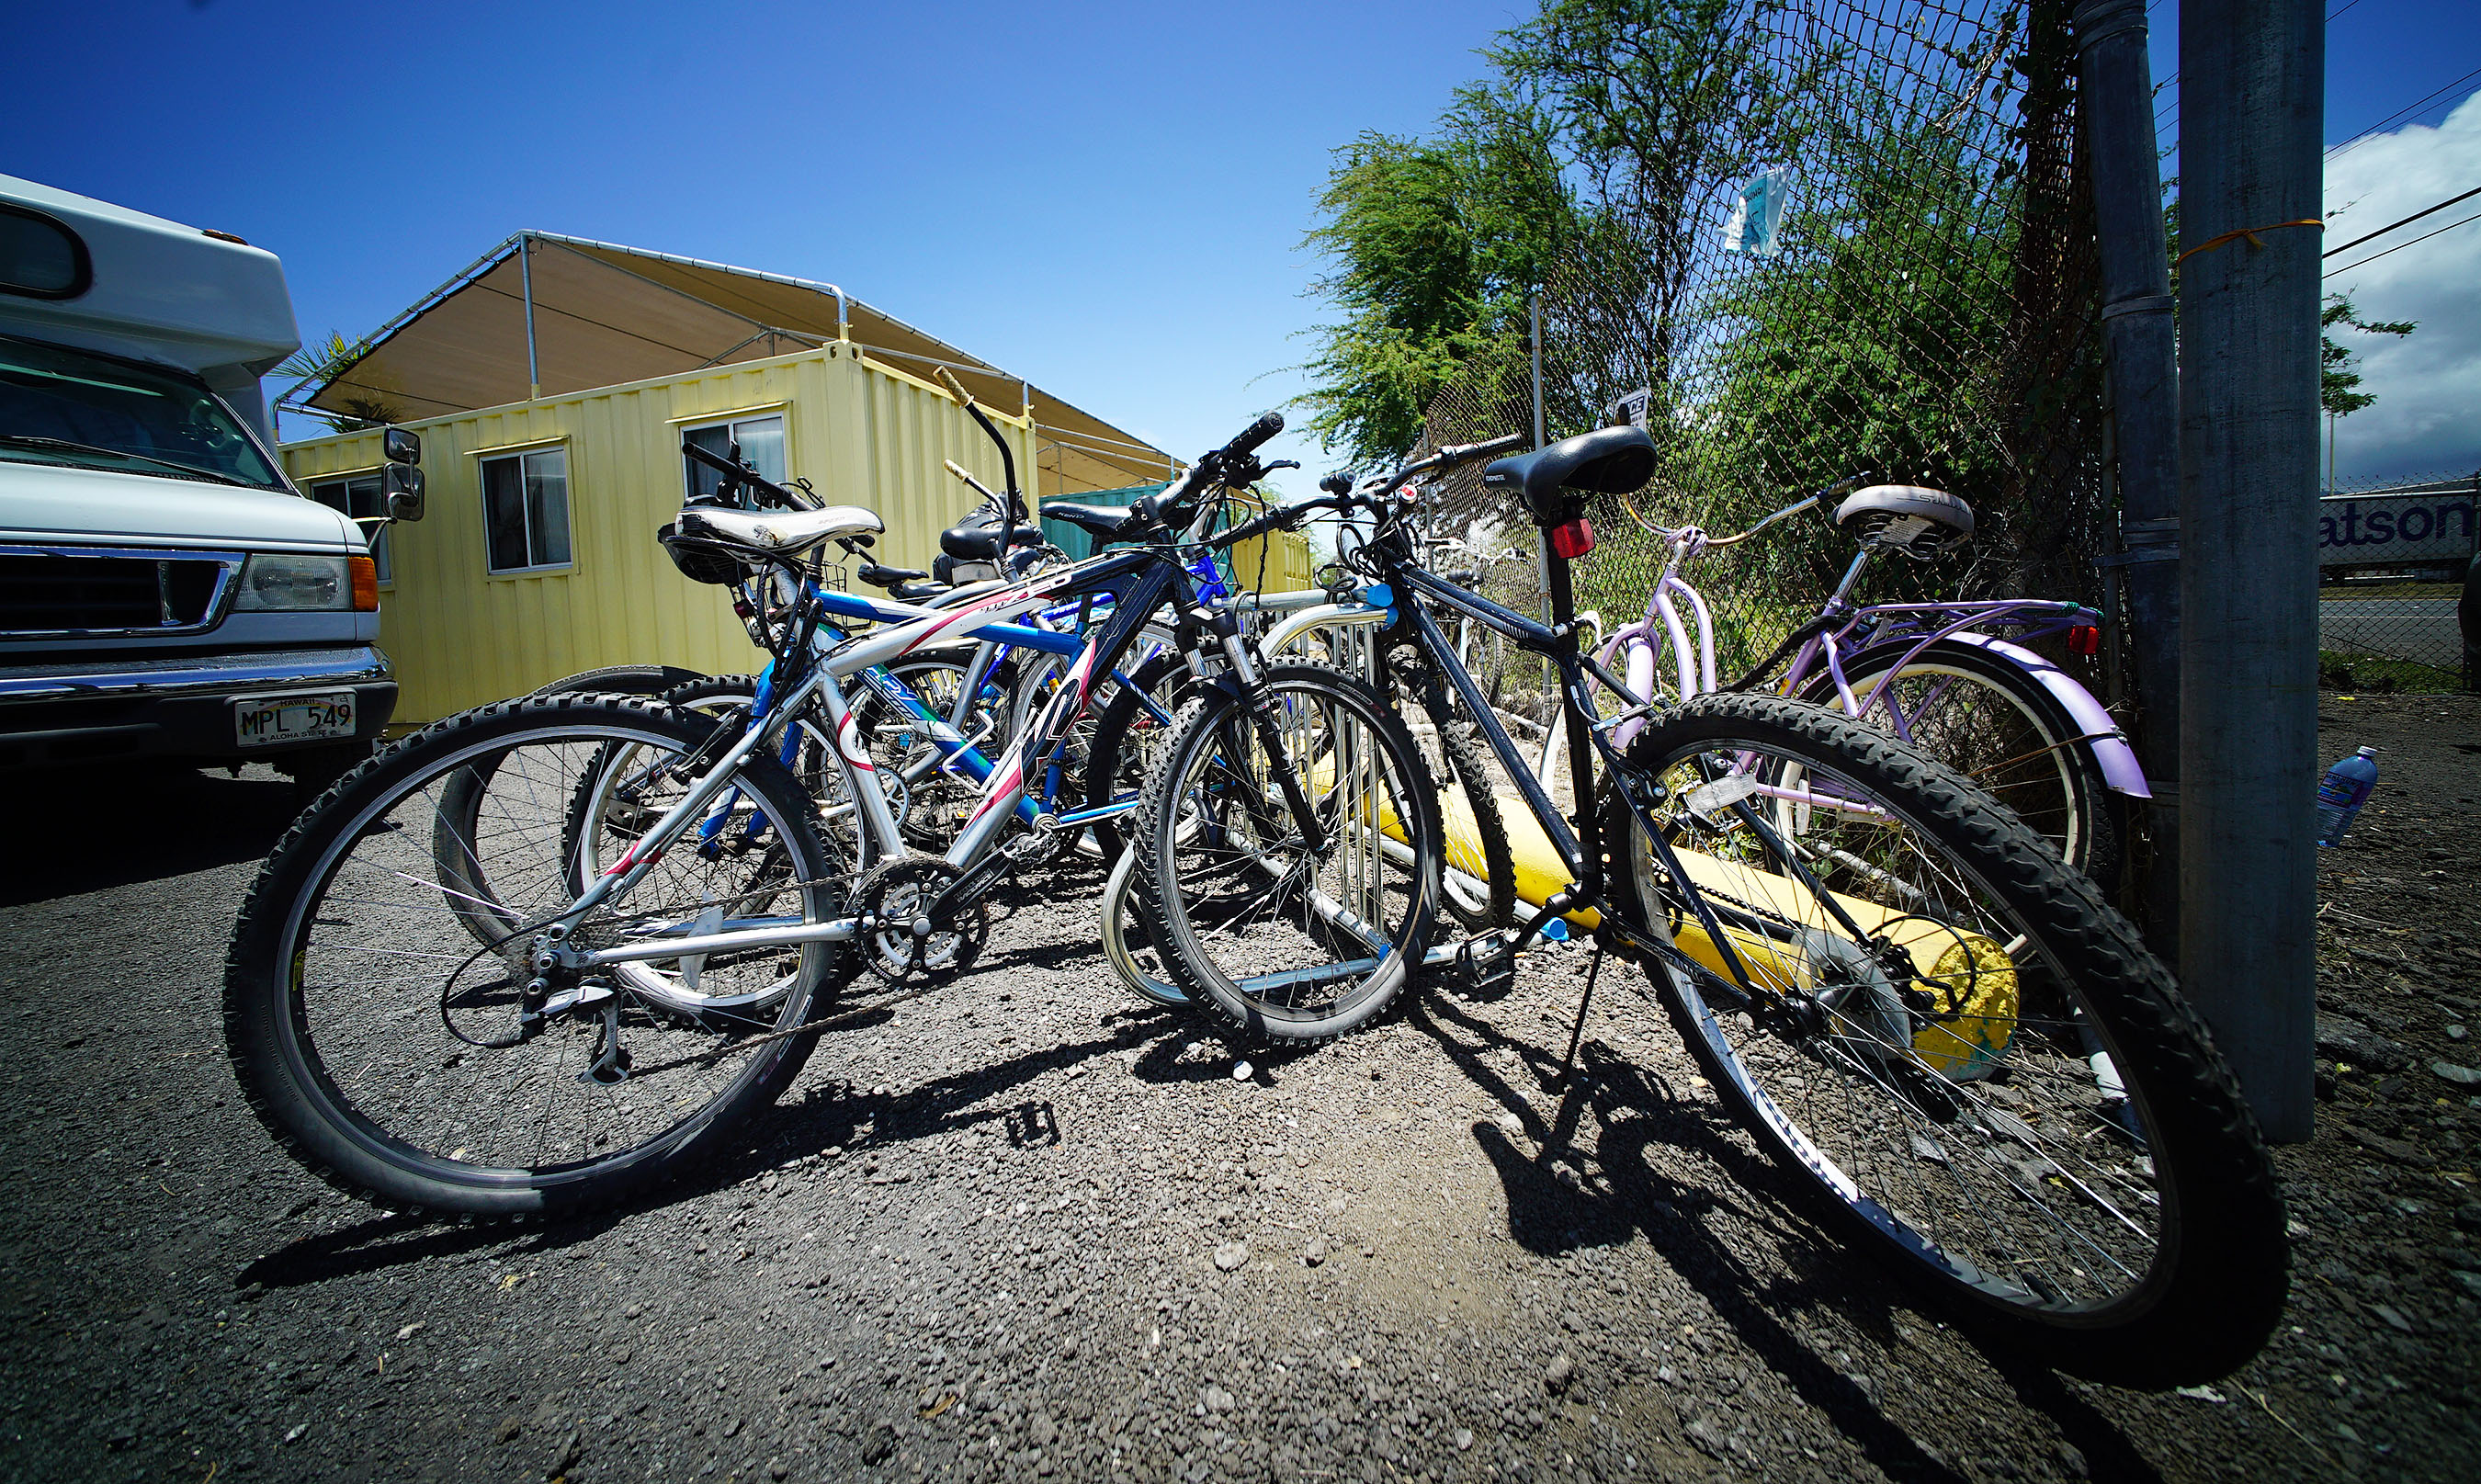 <p>Hale Mauliola residents can bring their bicycles. New amenities include solar charging stations, room lighting and personal storage lockers.</p>